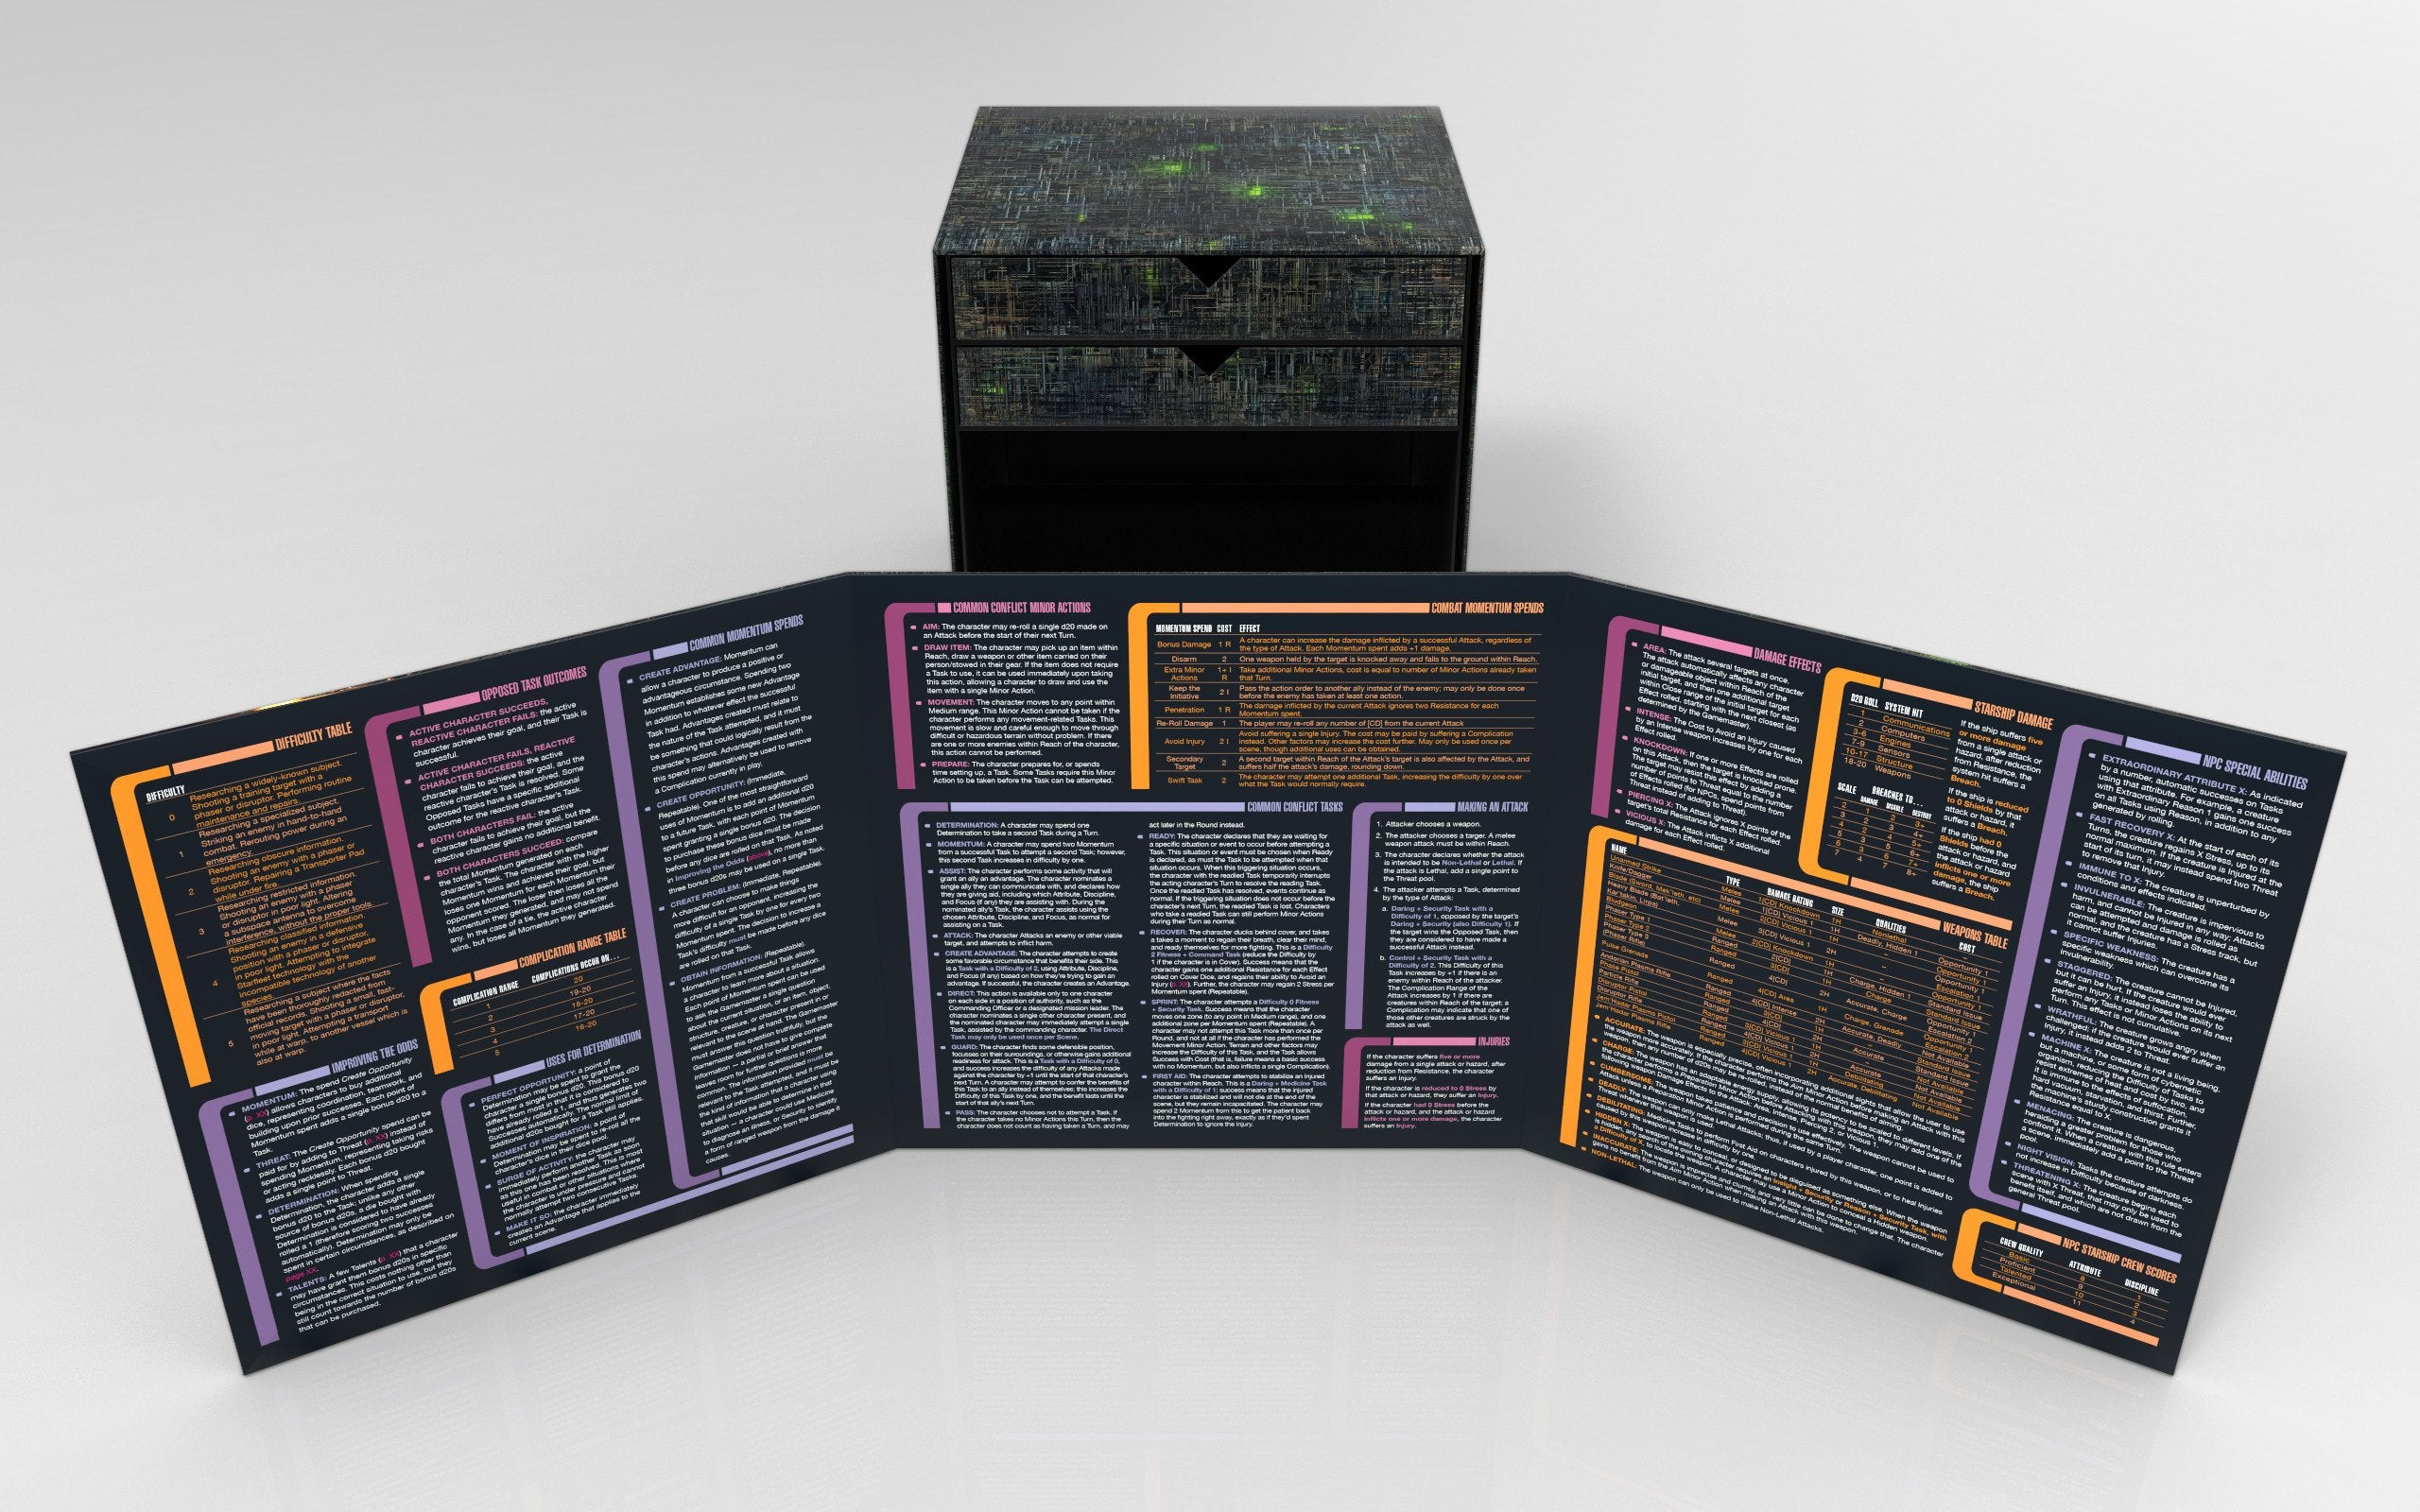 Star Trek Adventures Borg Cube Collector's Edition Box Set